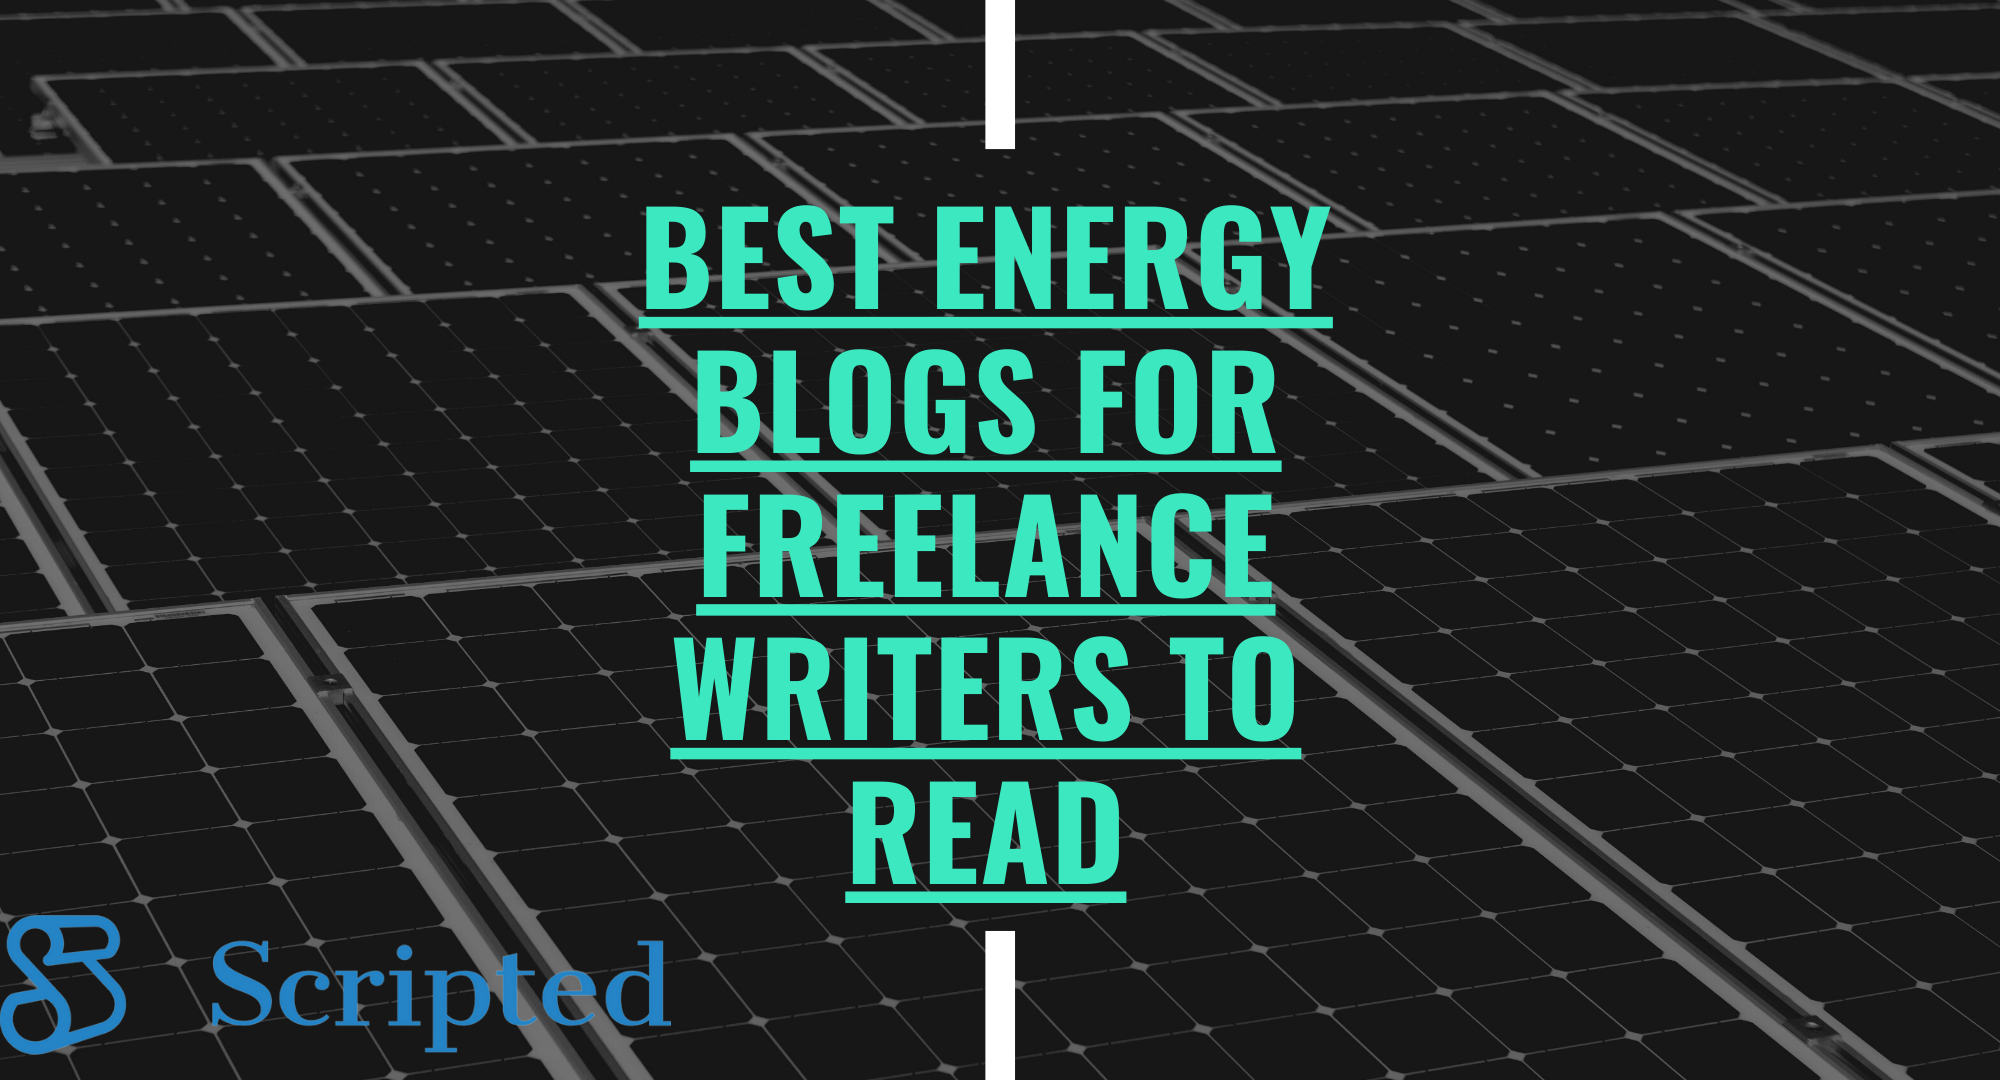 Best Energy Blogs to For Freelance Writers to Read